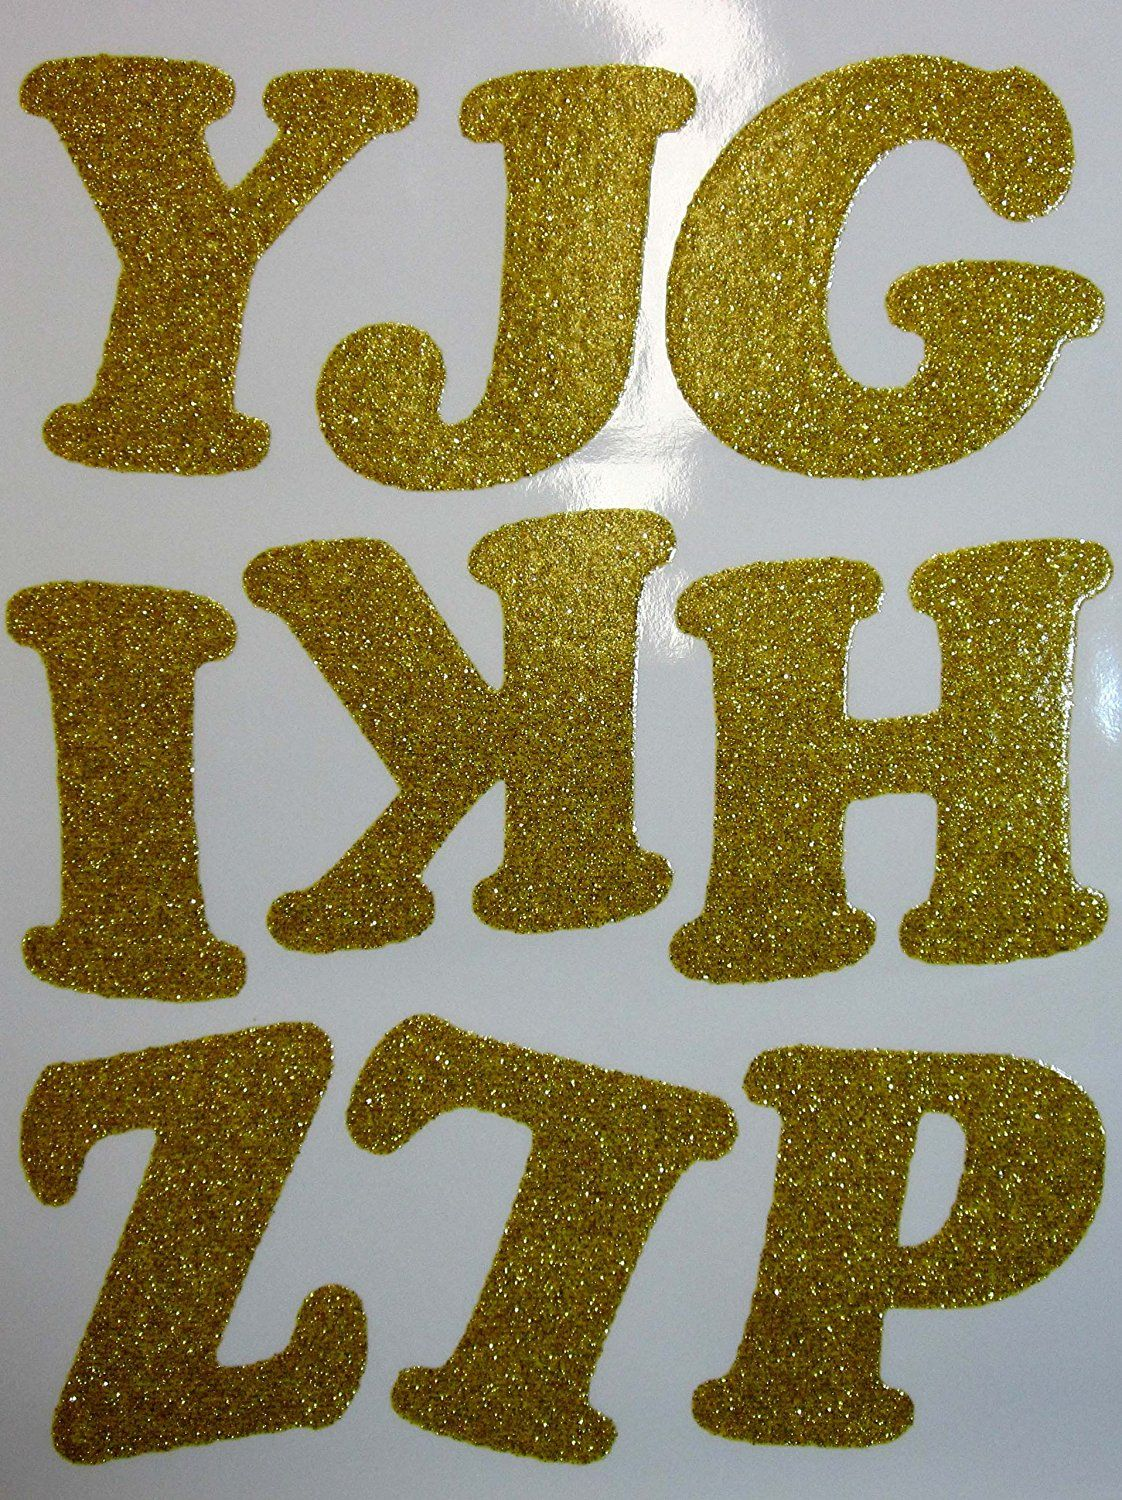 DIY 3 Inch Iron On Letters in Gold Glitter